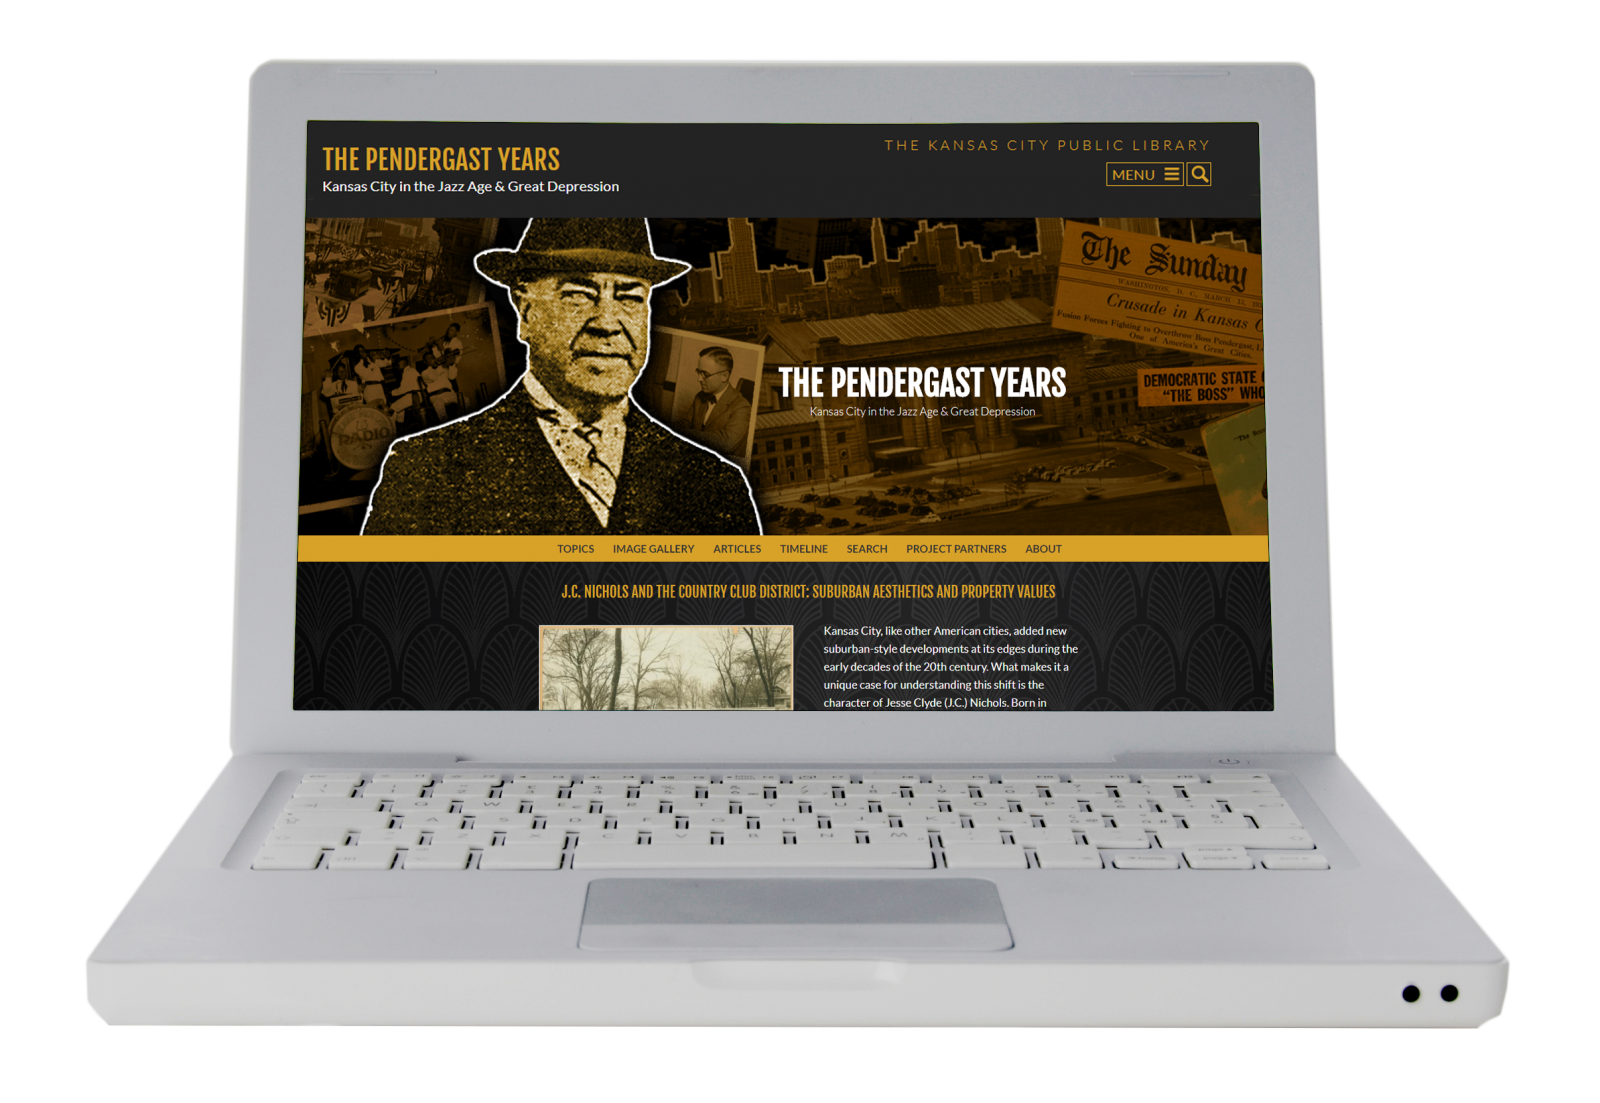 The Pendergast Years website